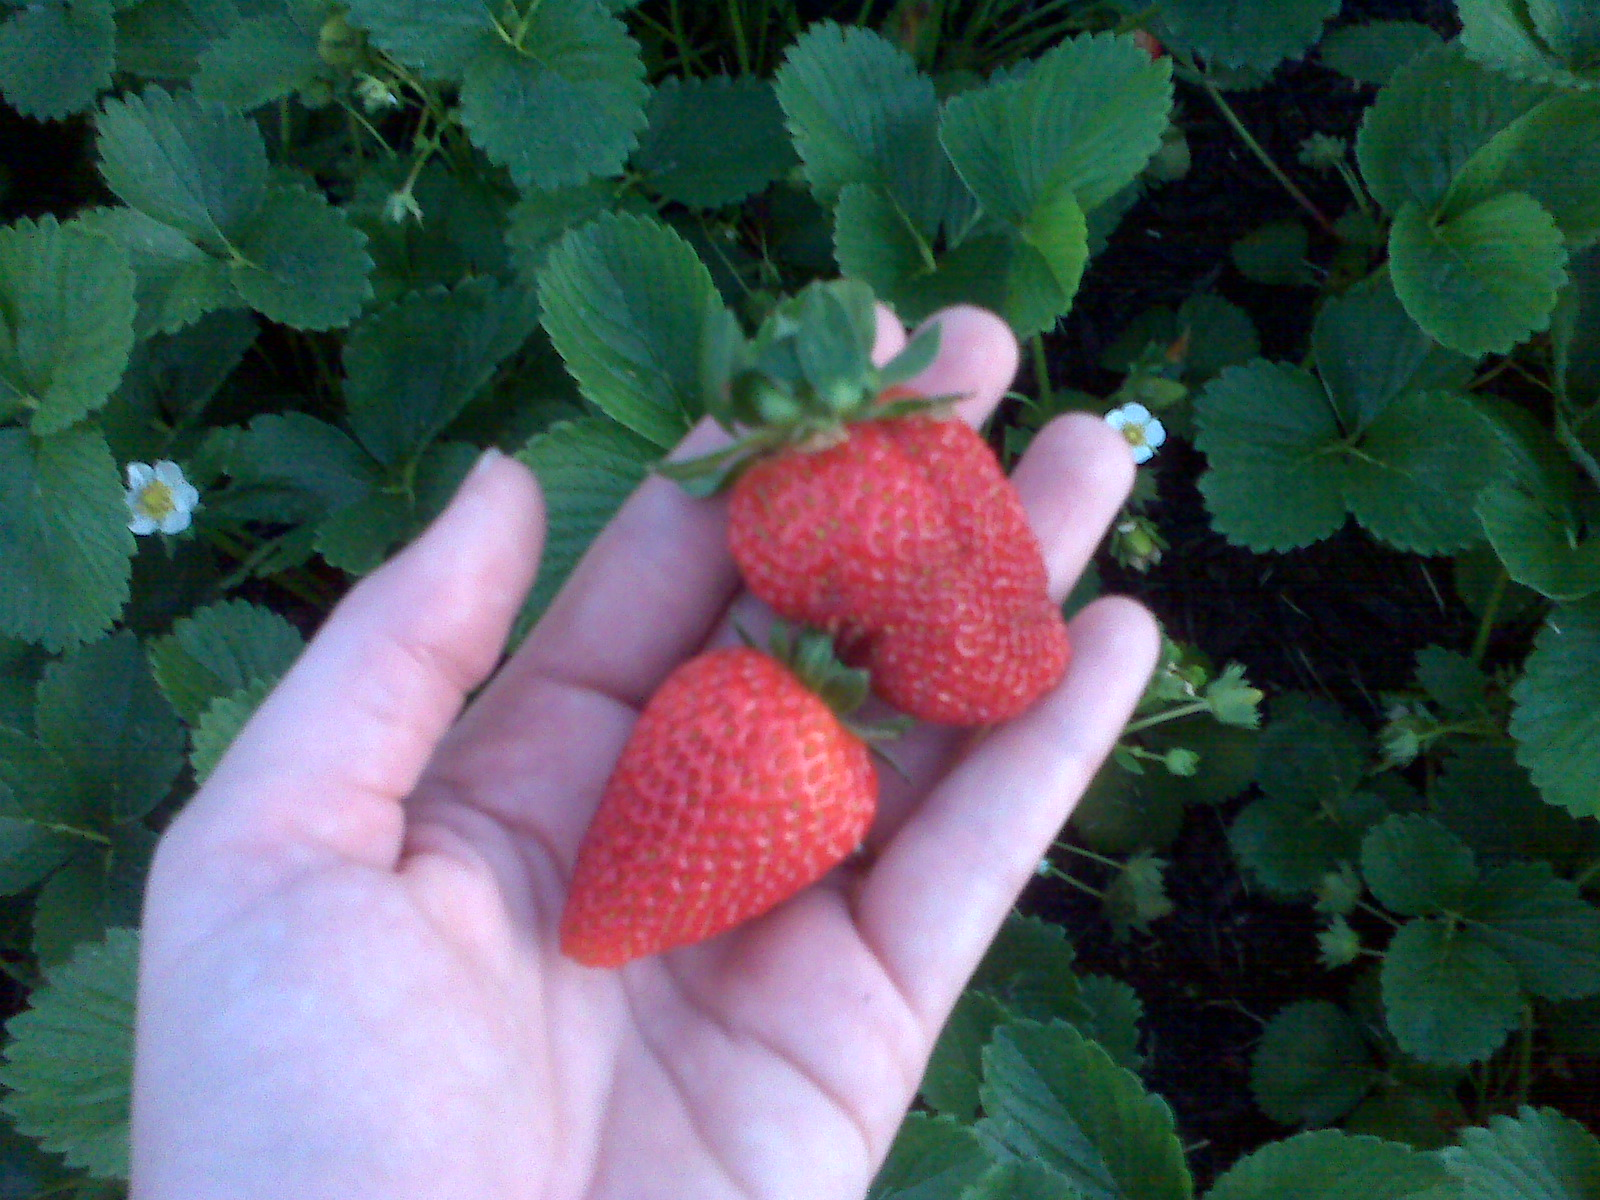 The strawberries did really well growing next to the chicken coop. They must enjoy of the rain run off from the chicken run.